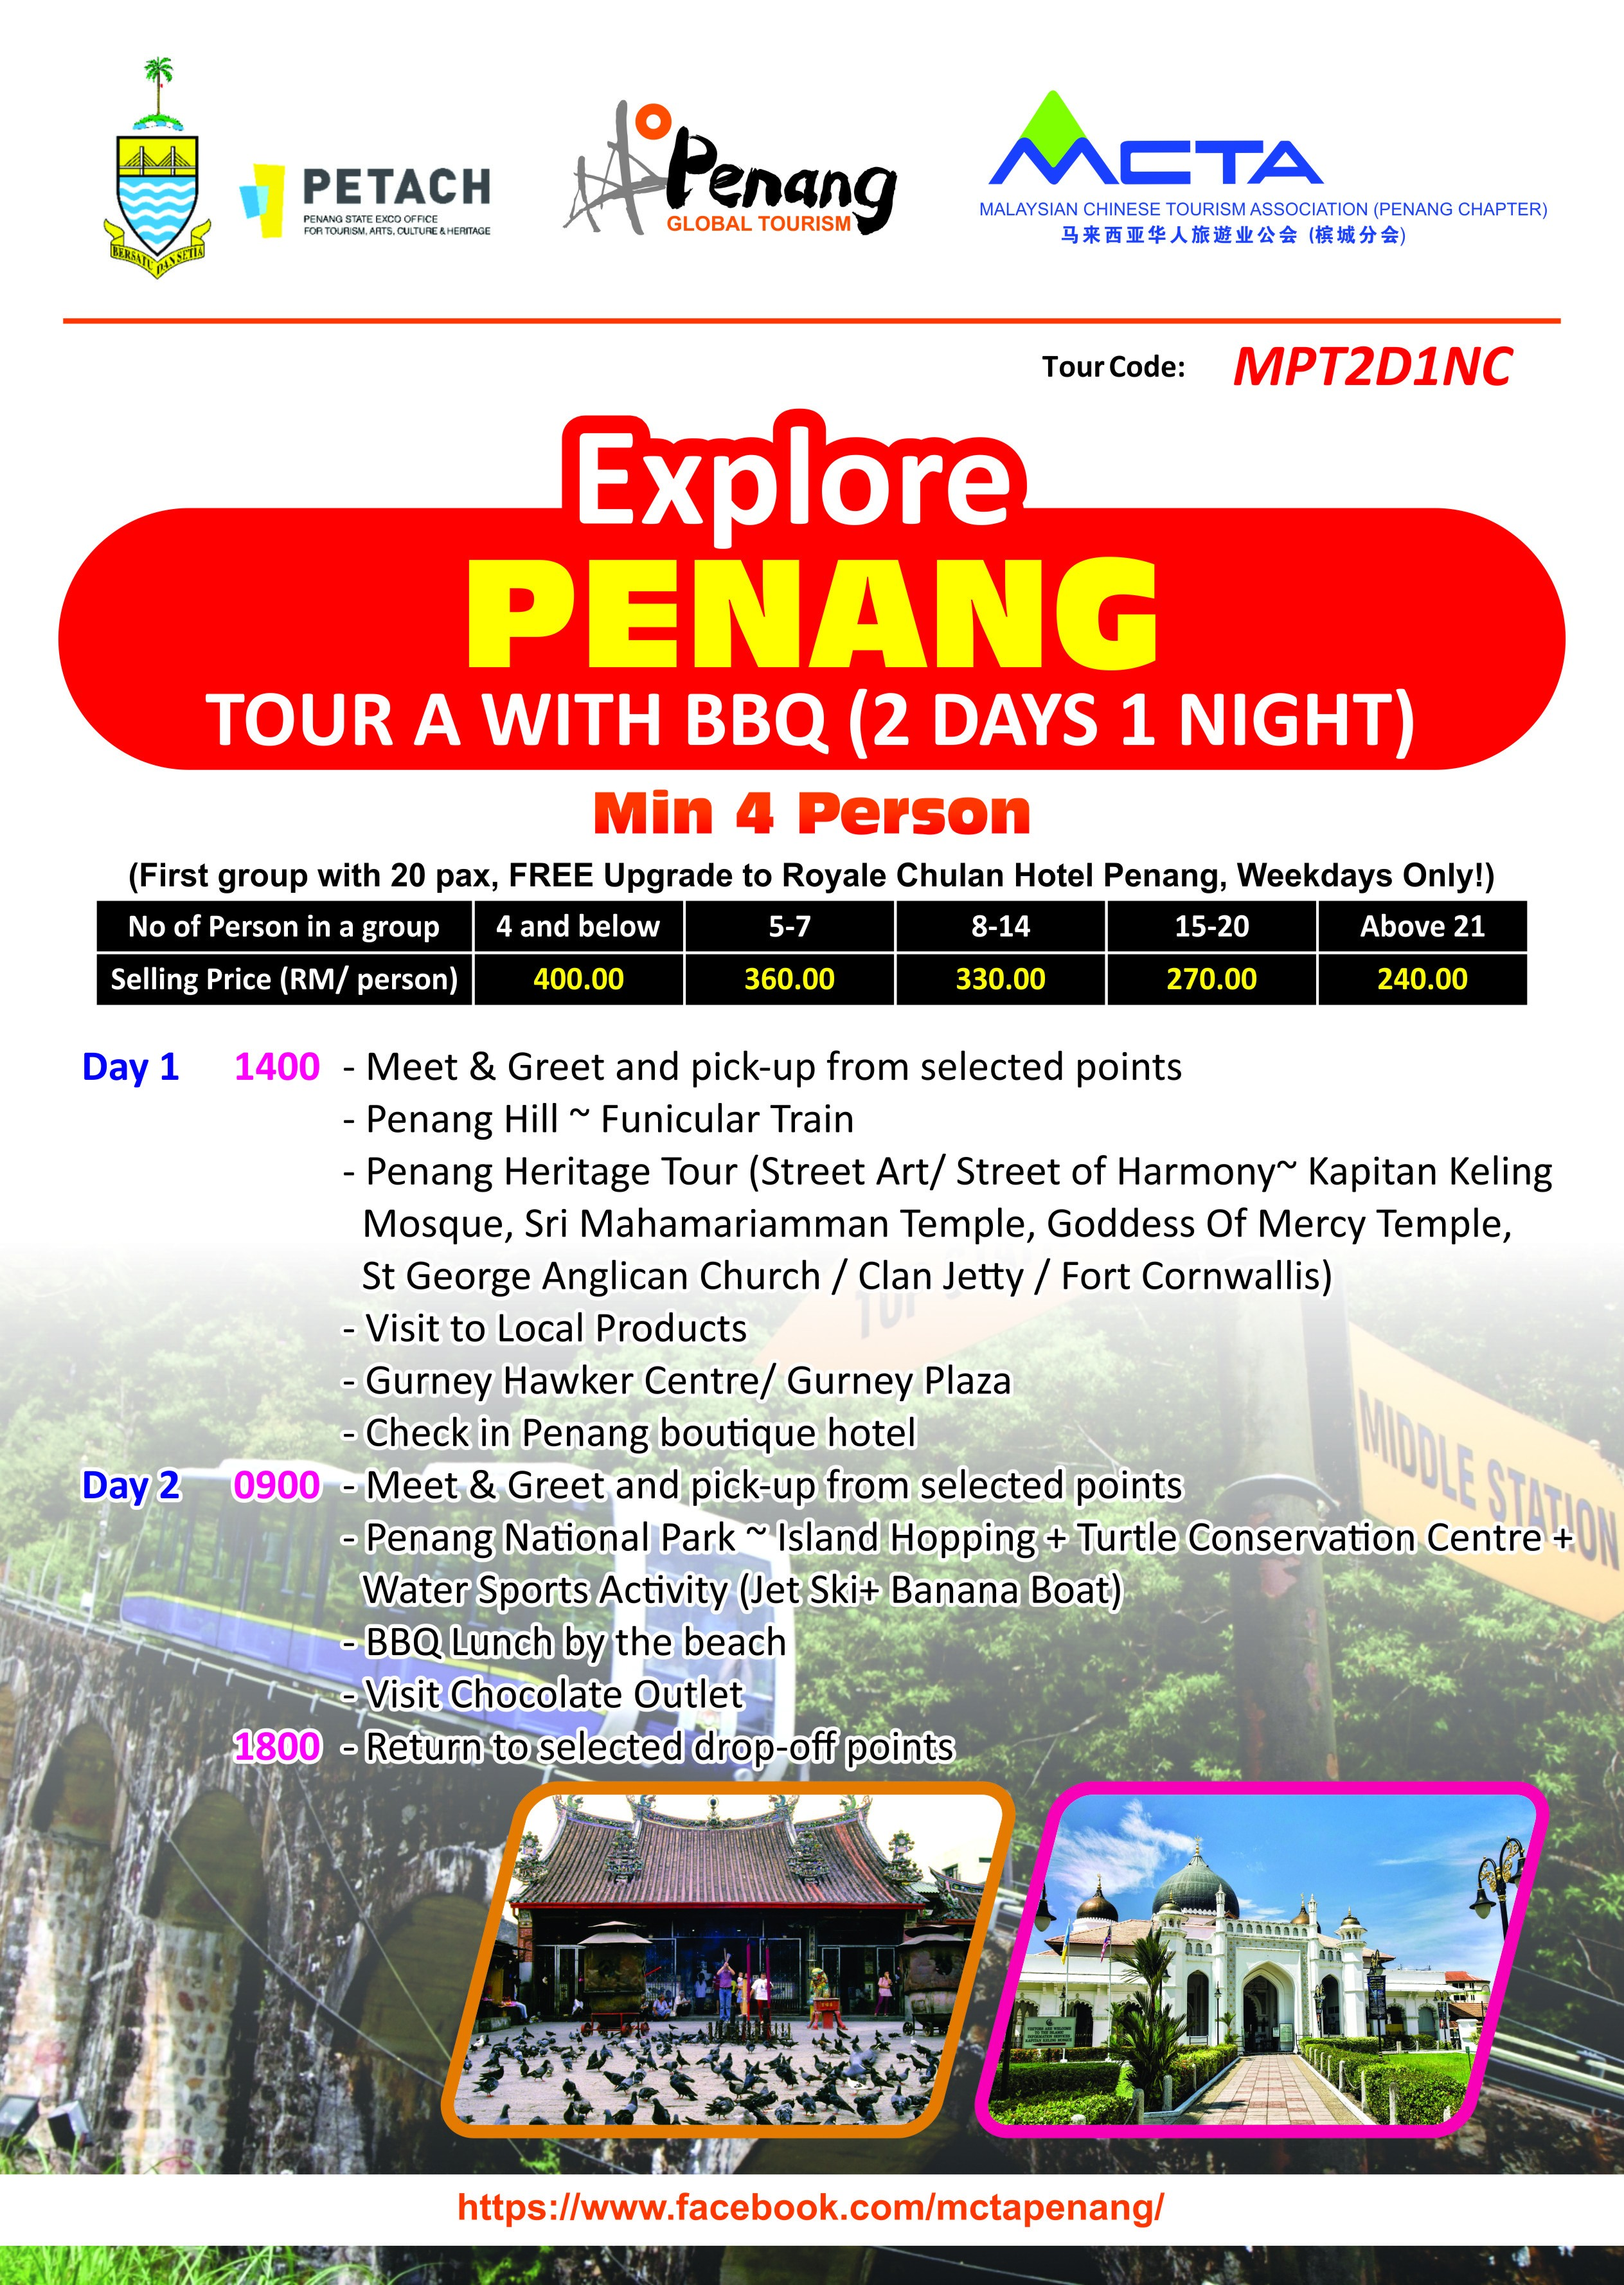 Explore Penang - Tour A with BBQ (2 Days 1 Night)